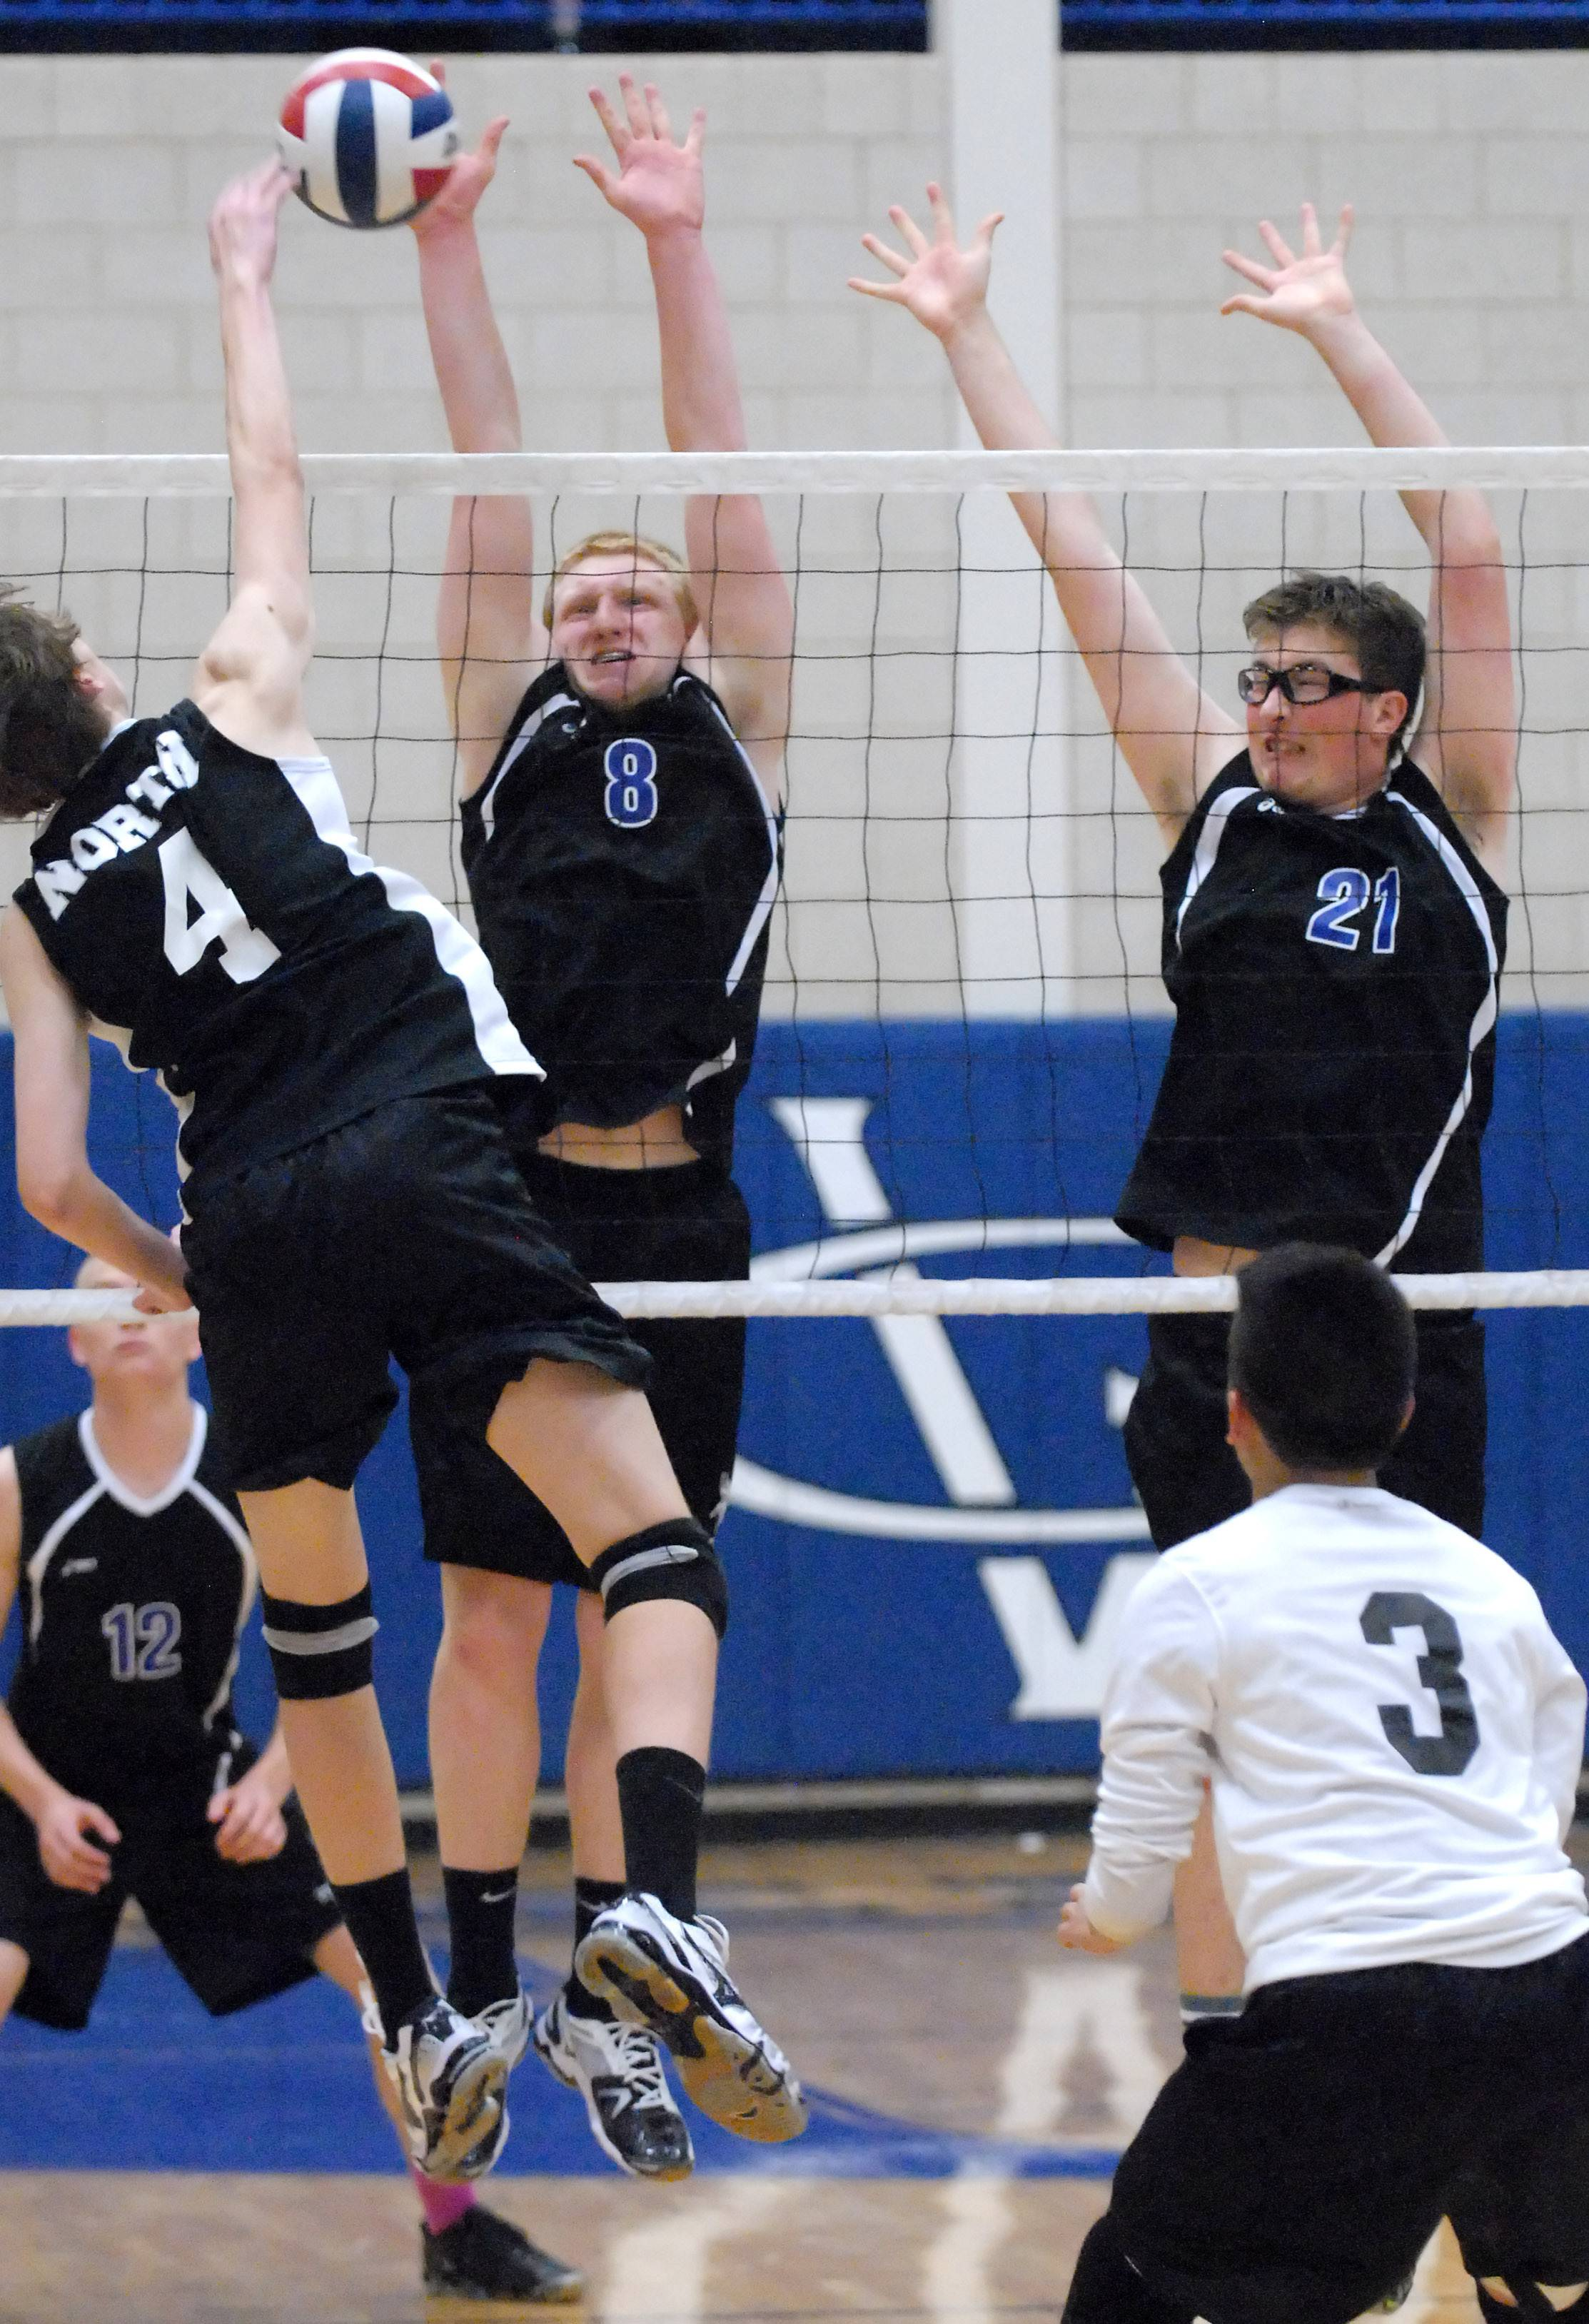 Geneva's Luke Will (8) and Sam Wulfkuhle (21) go for a block against St. Charles North's Drew Lanz in the second game on Tuesday in Geneva.